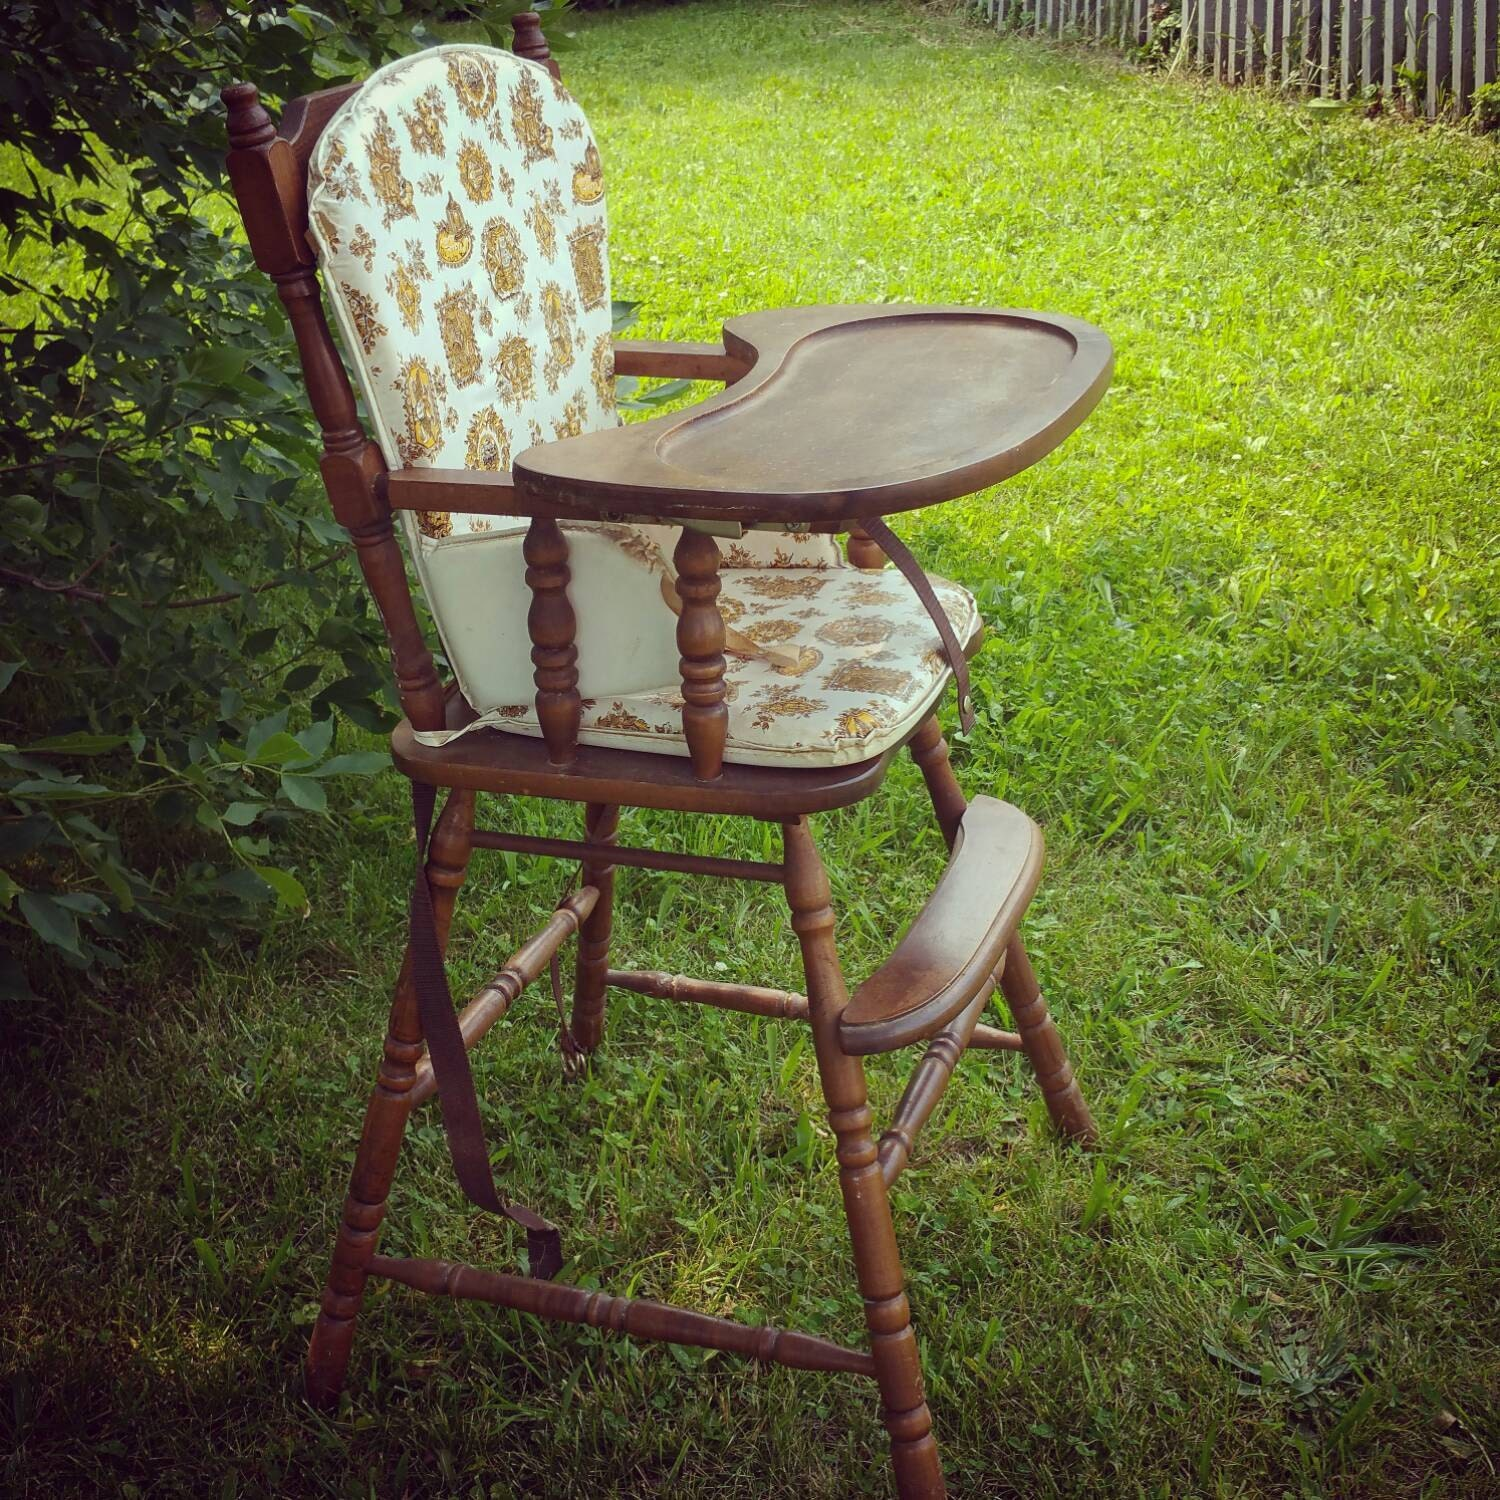 vintage wooden baby high chair with original plastic cover